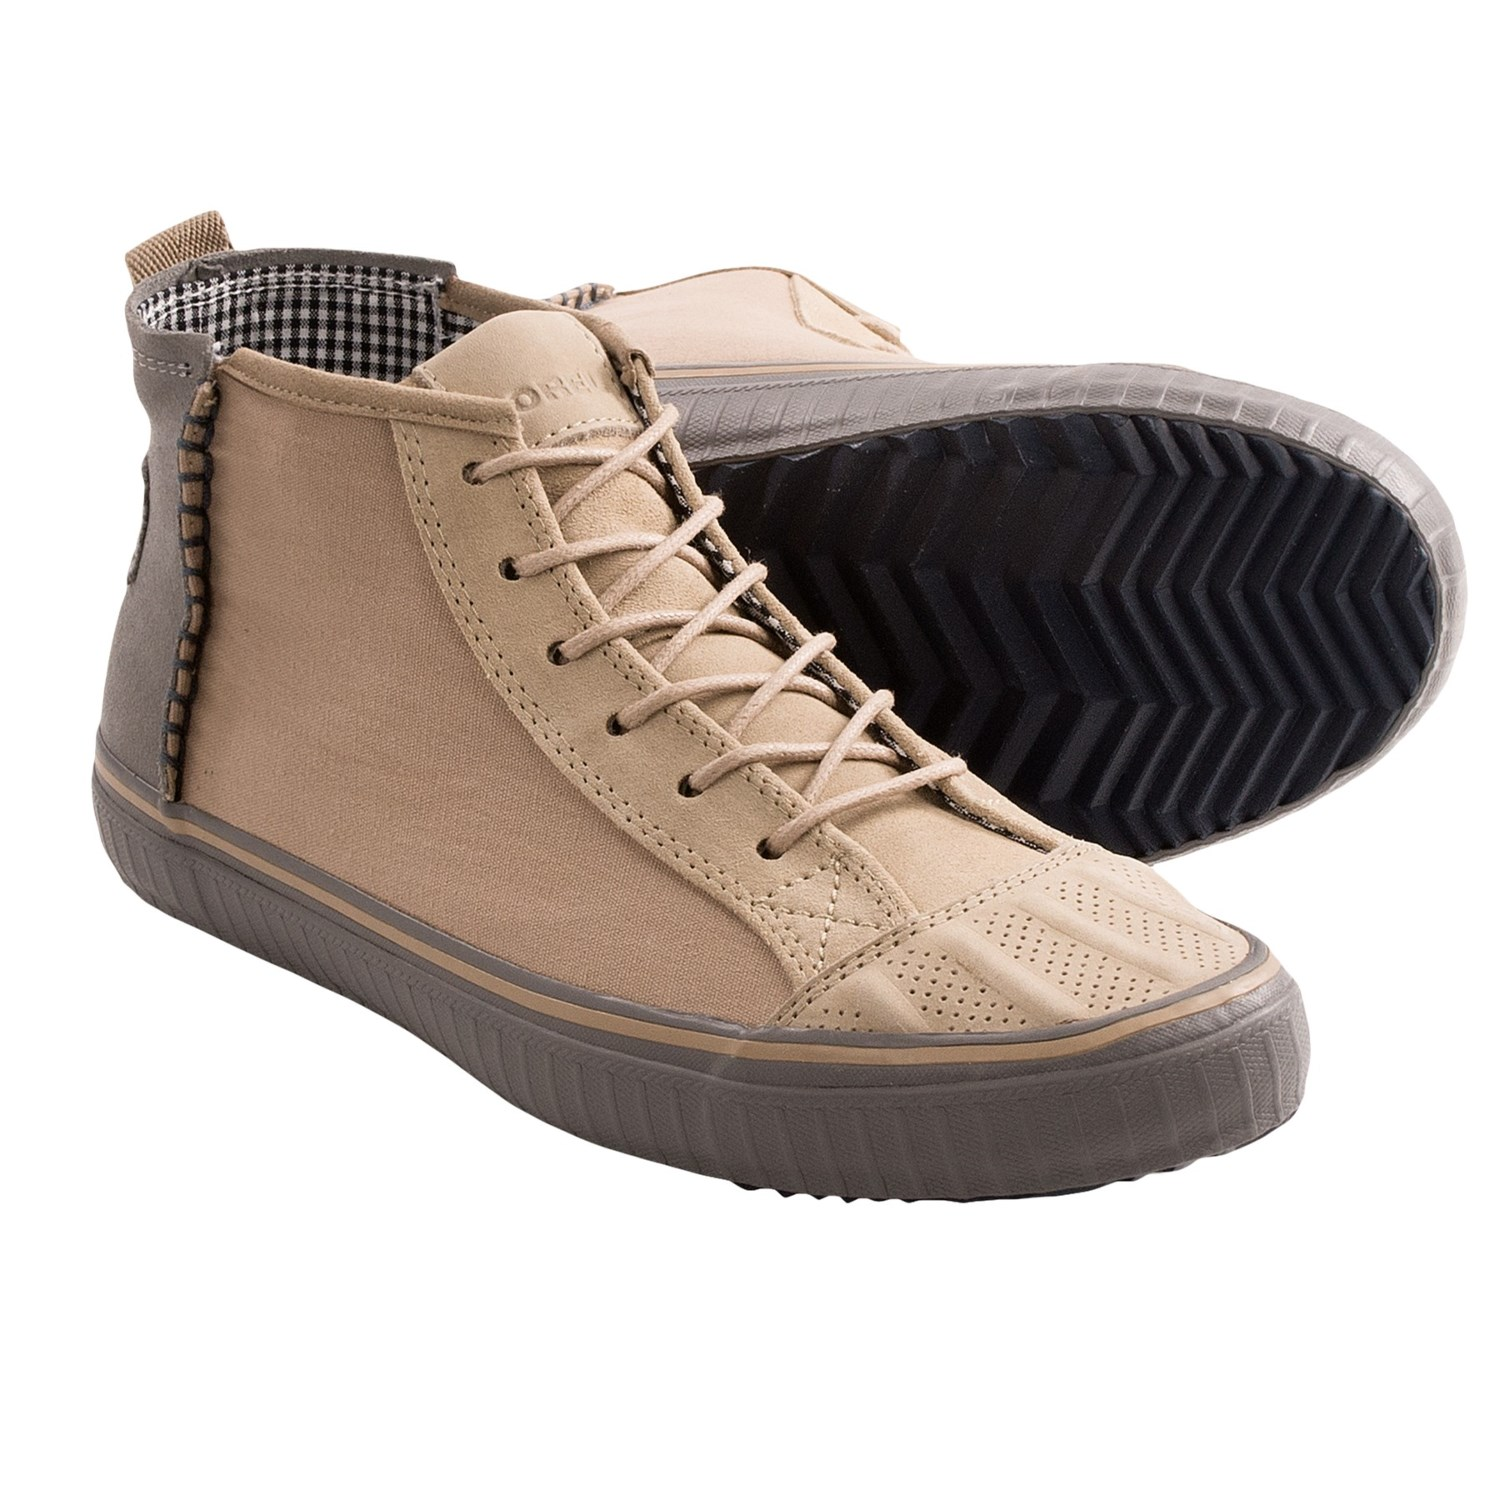 sorel berlin chukka boots canvas suede for